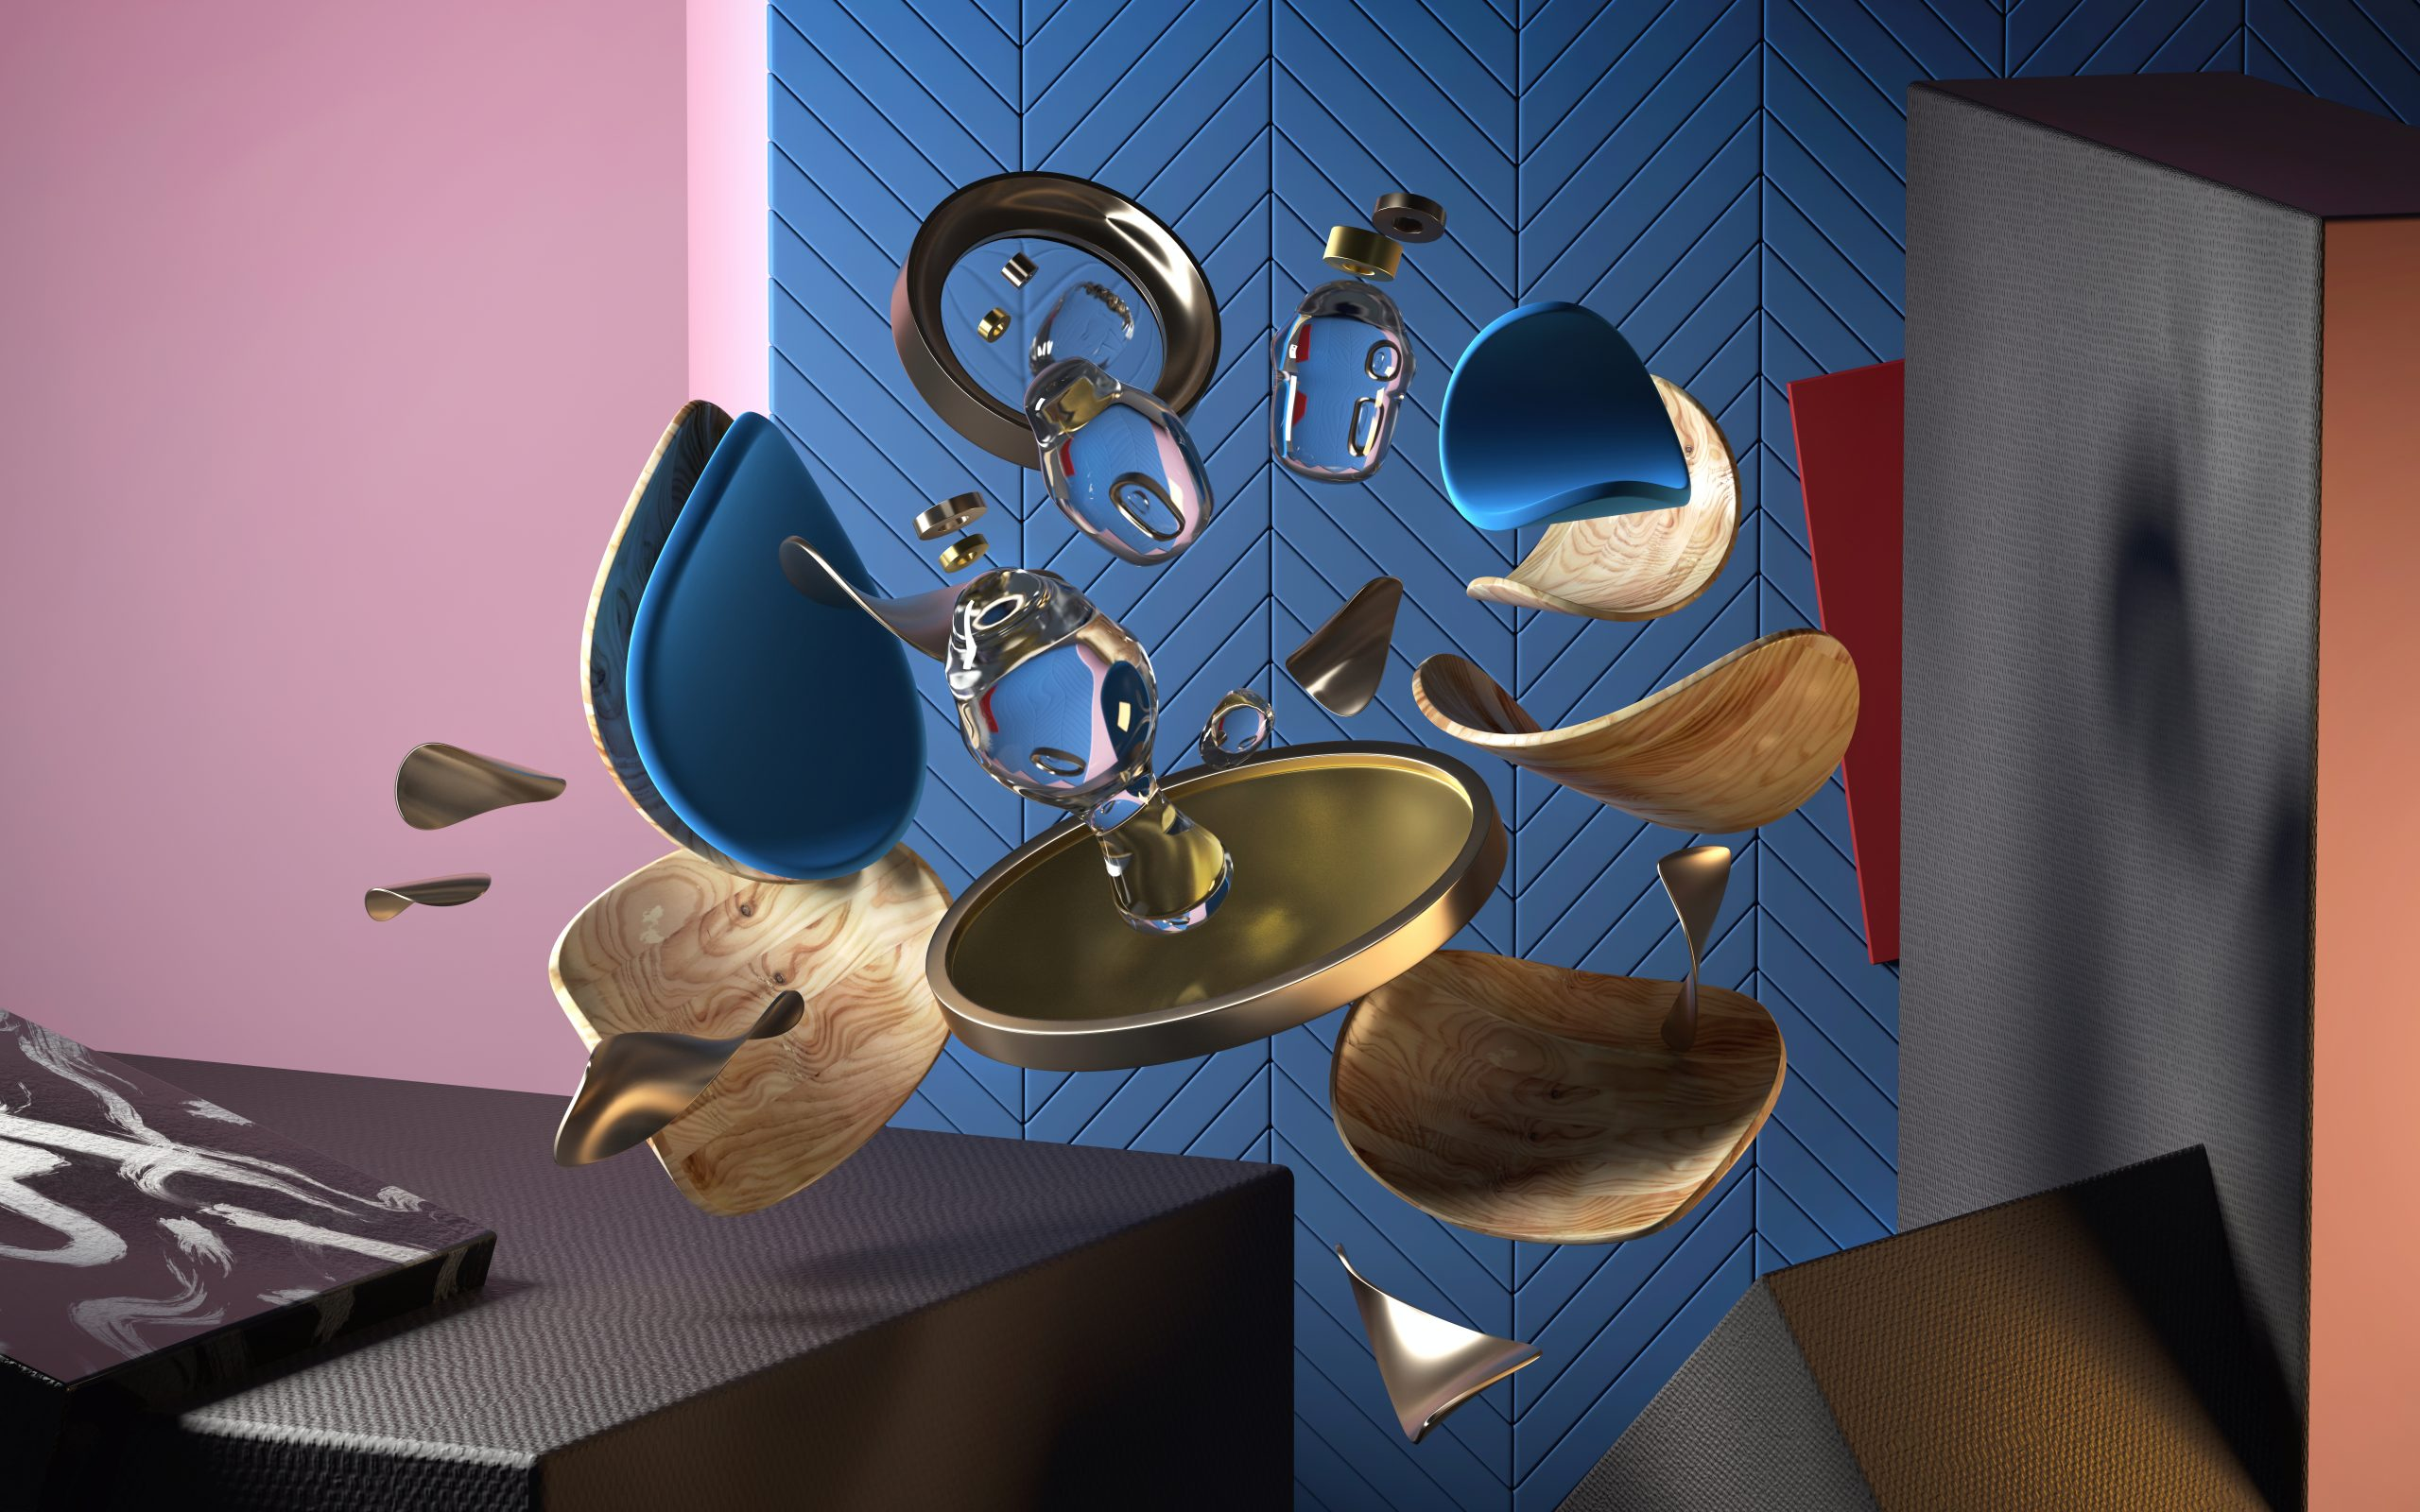 3d rendering of abstract composition with geometric shapes and forms. Concept of modern interior or industrial design trends. Different material shaders: wood, gold, glass, chrome.